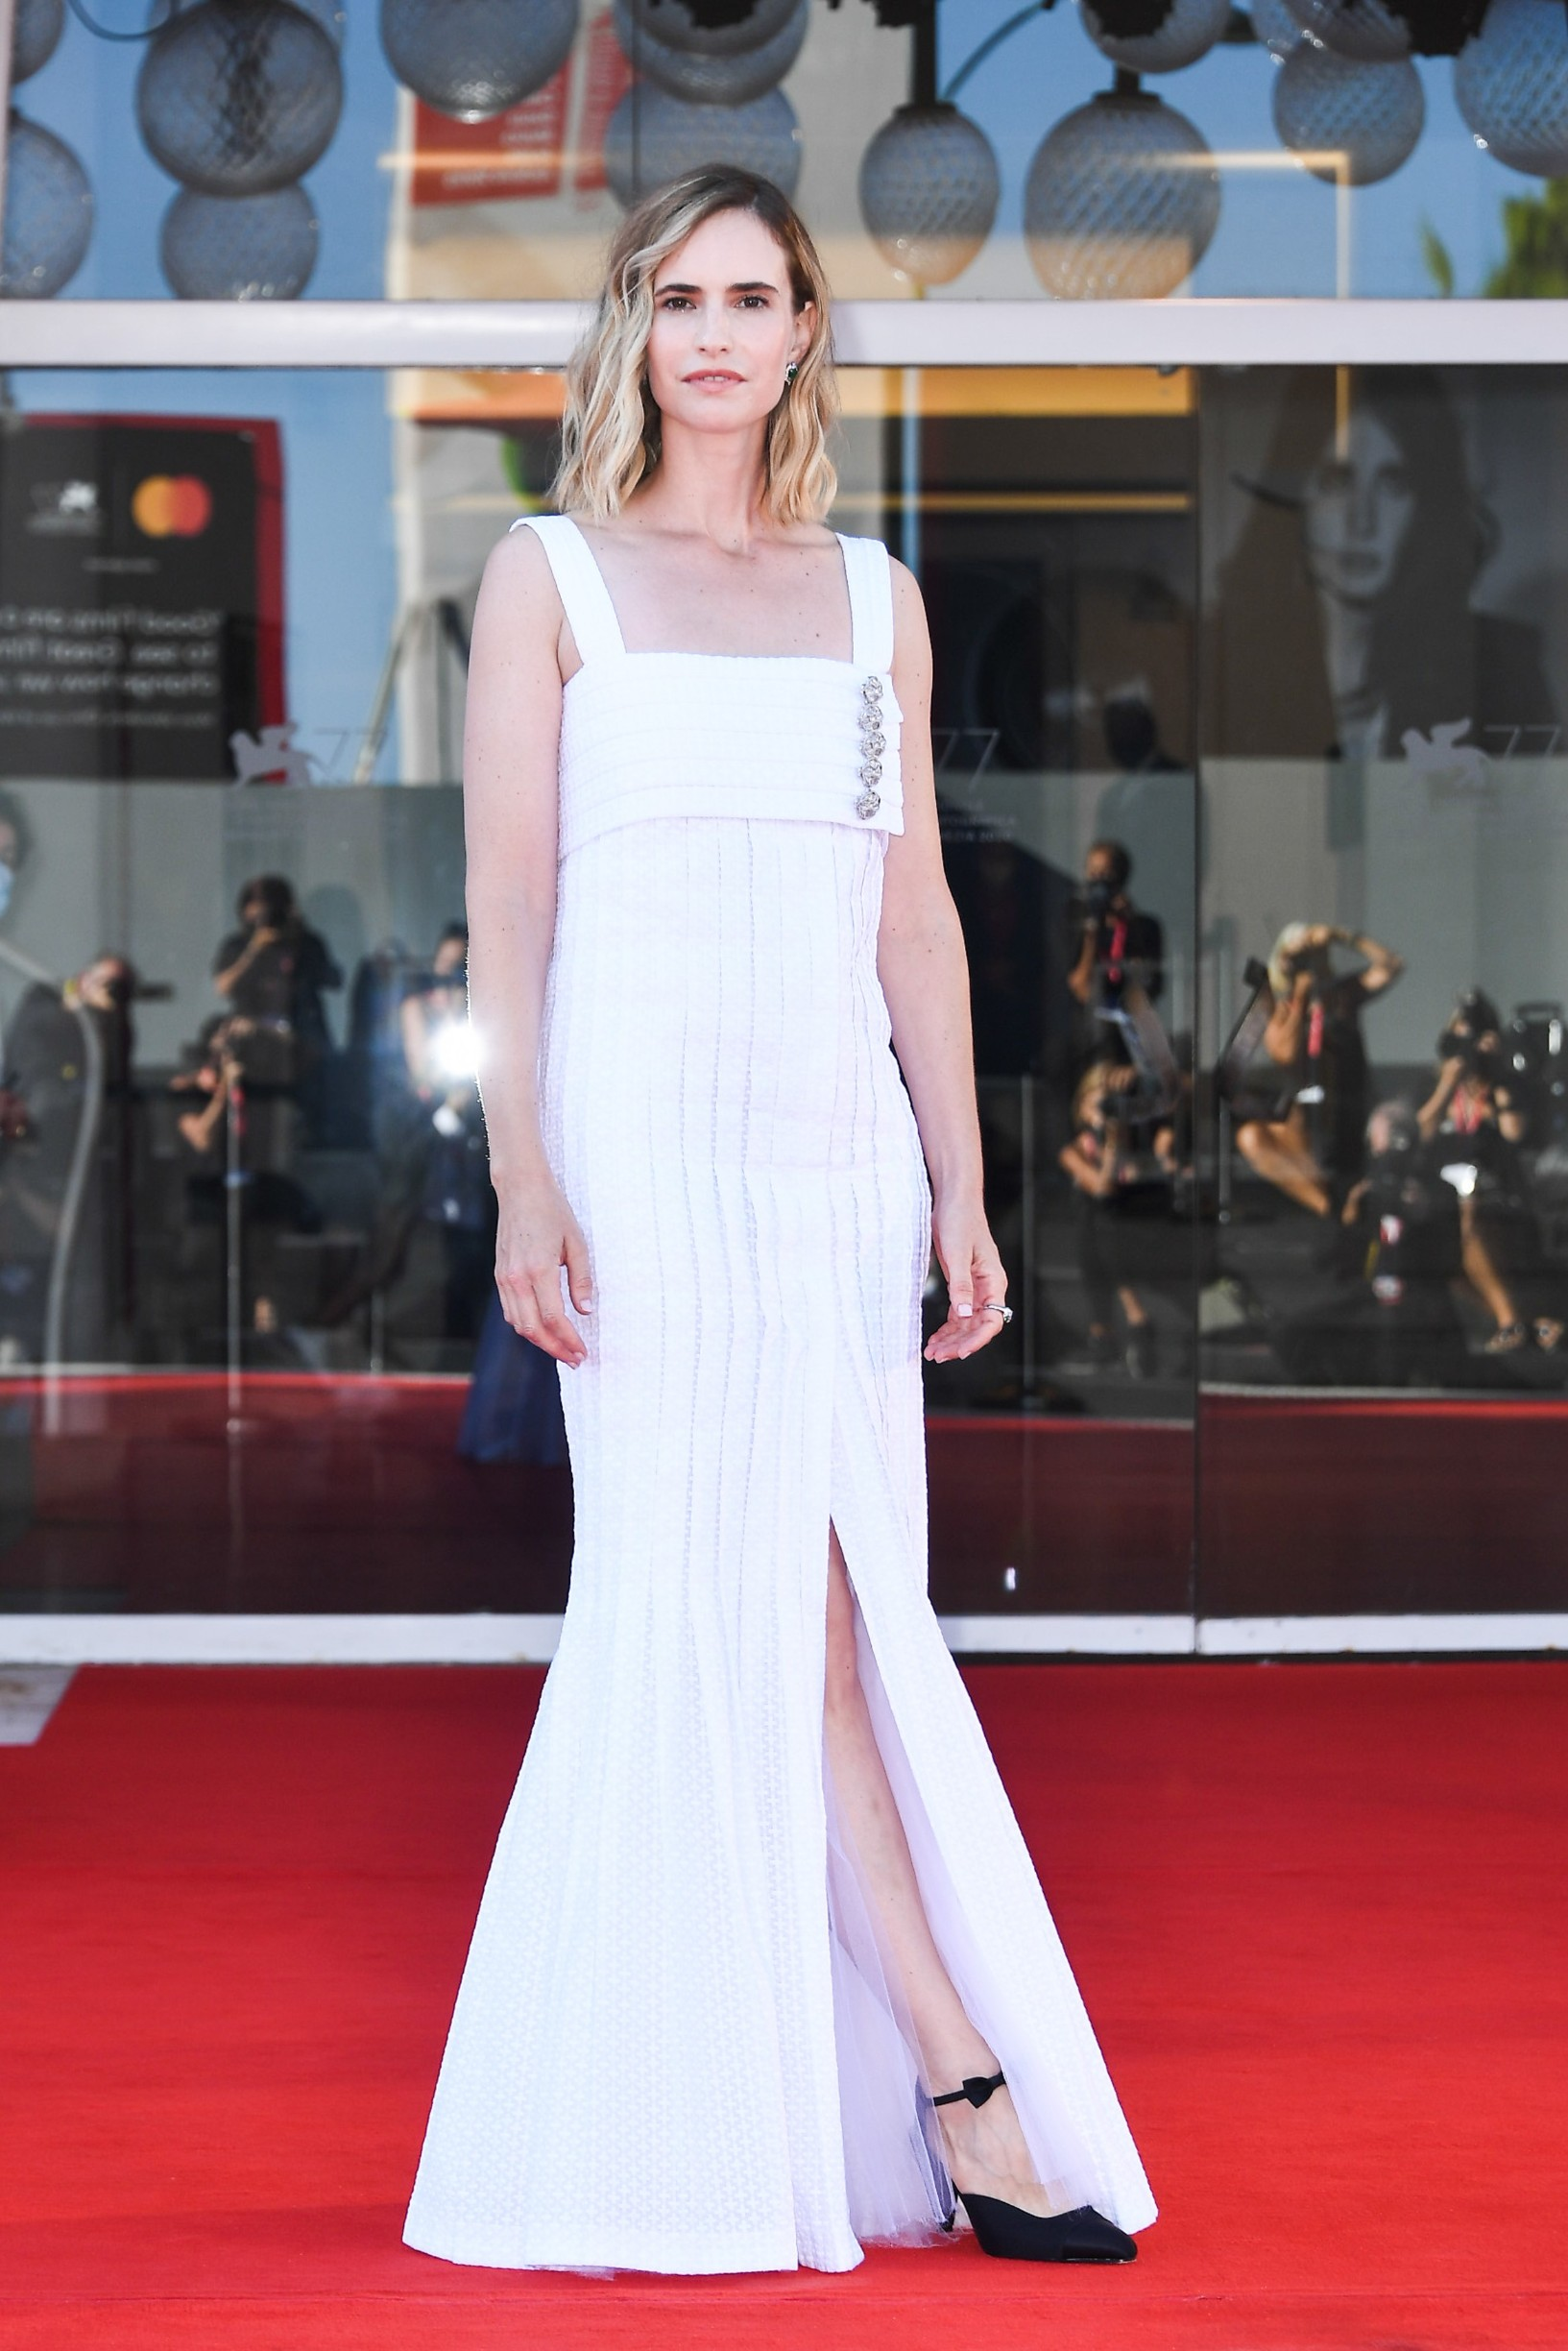 Naama Preis  77th Venice Film Festival Red Carpet of the movie -Laila in Haifa- Venice, Italy 8th September 2020,Image: 556955606, License: Rights-managed, Restrictions: , Model Release: no, Credit line: - / SGP / Profimedia